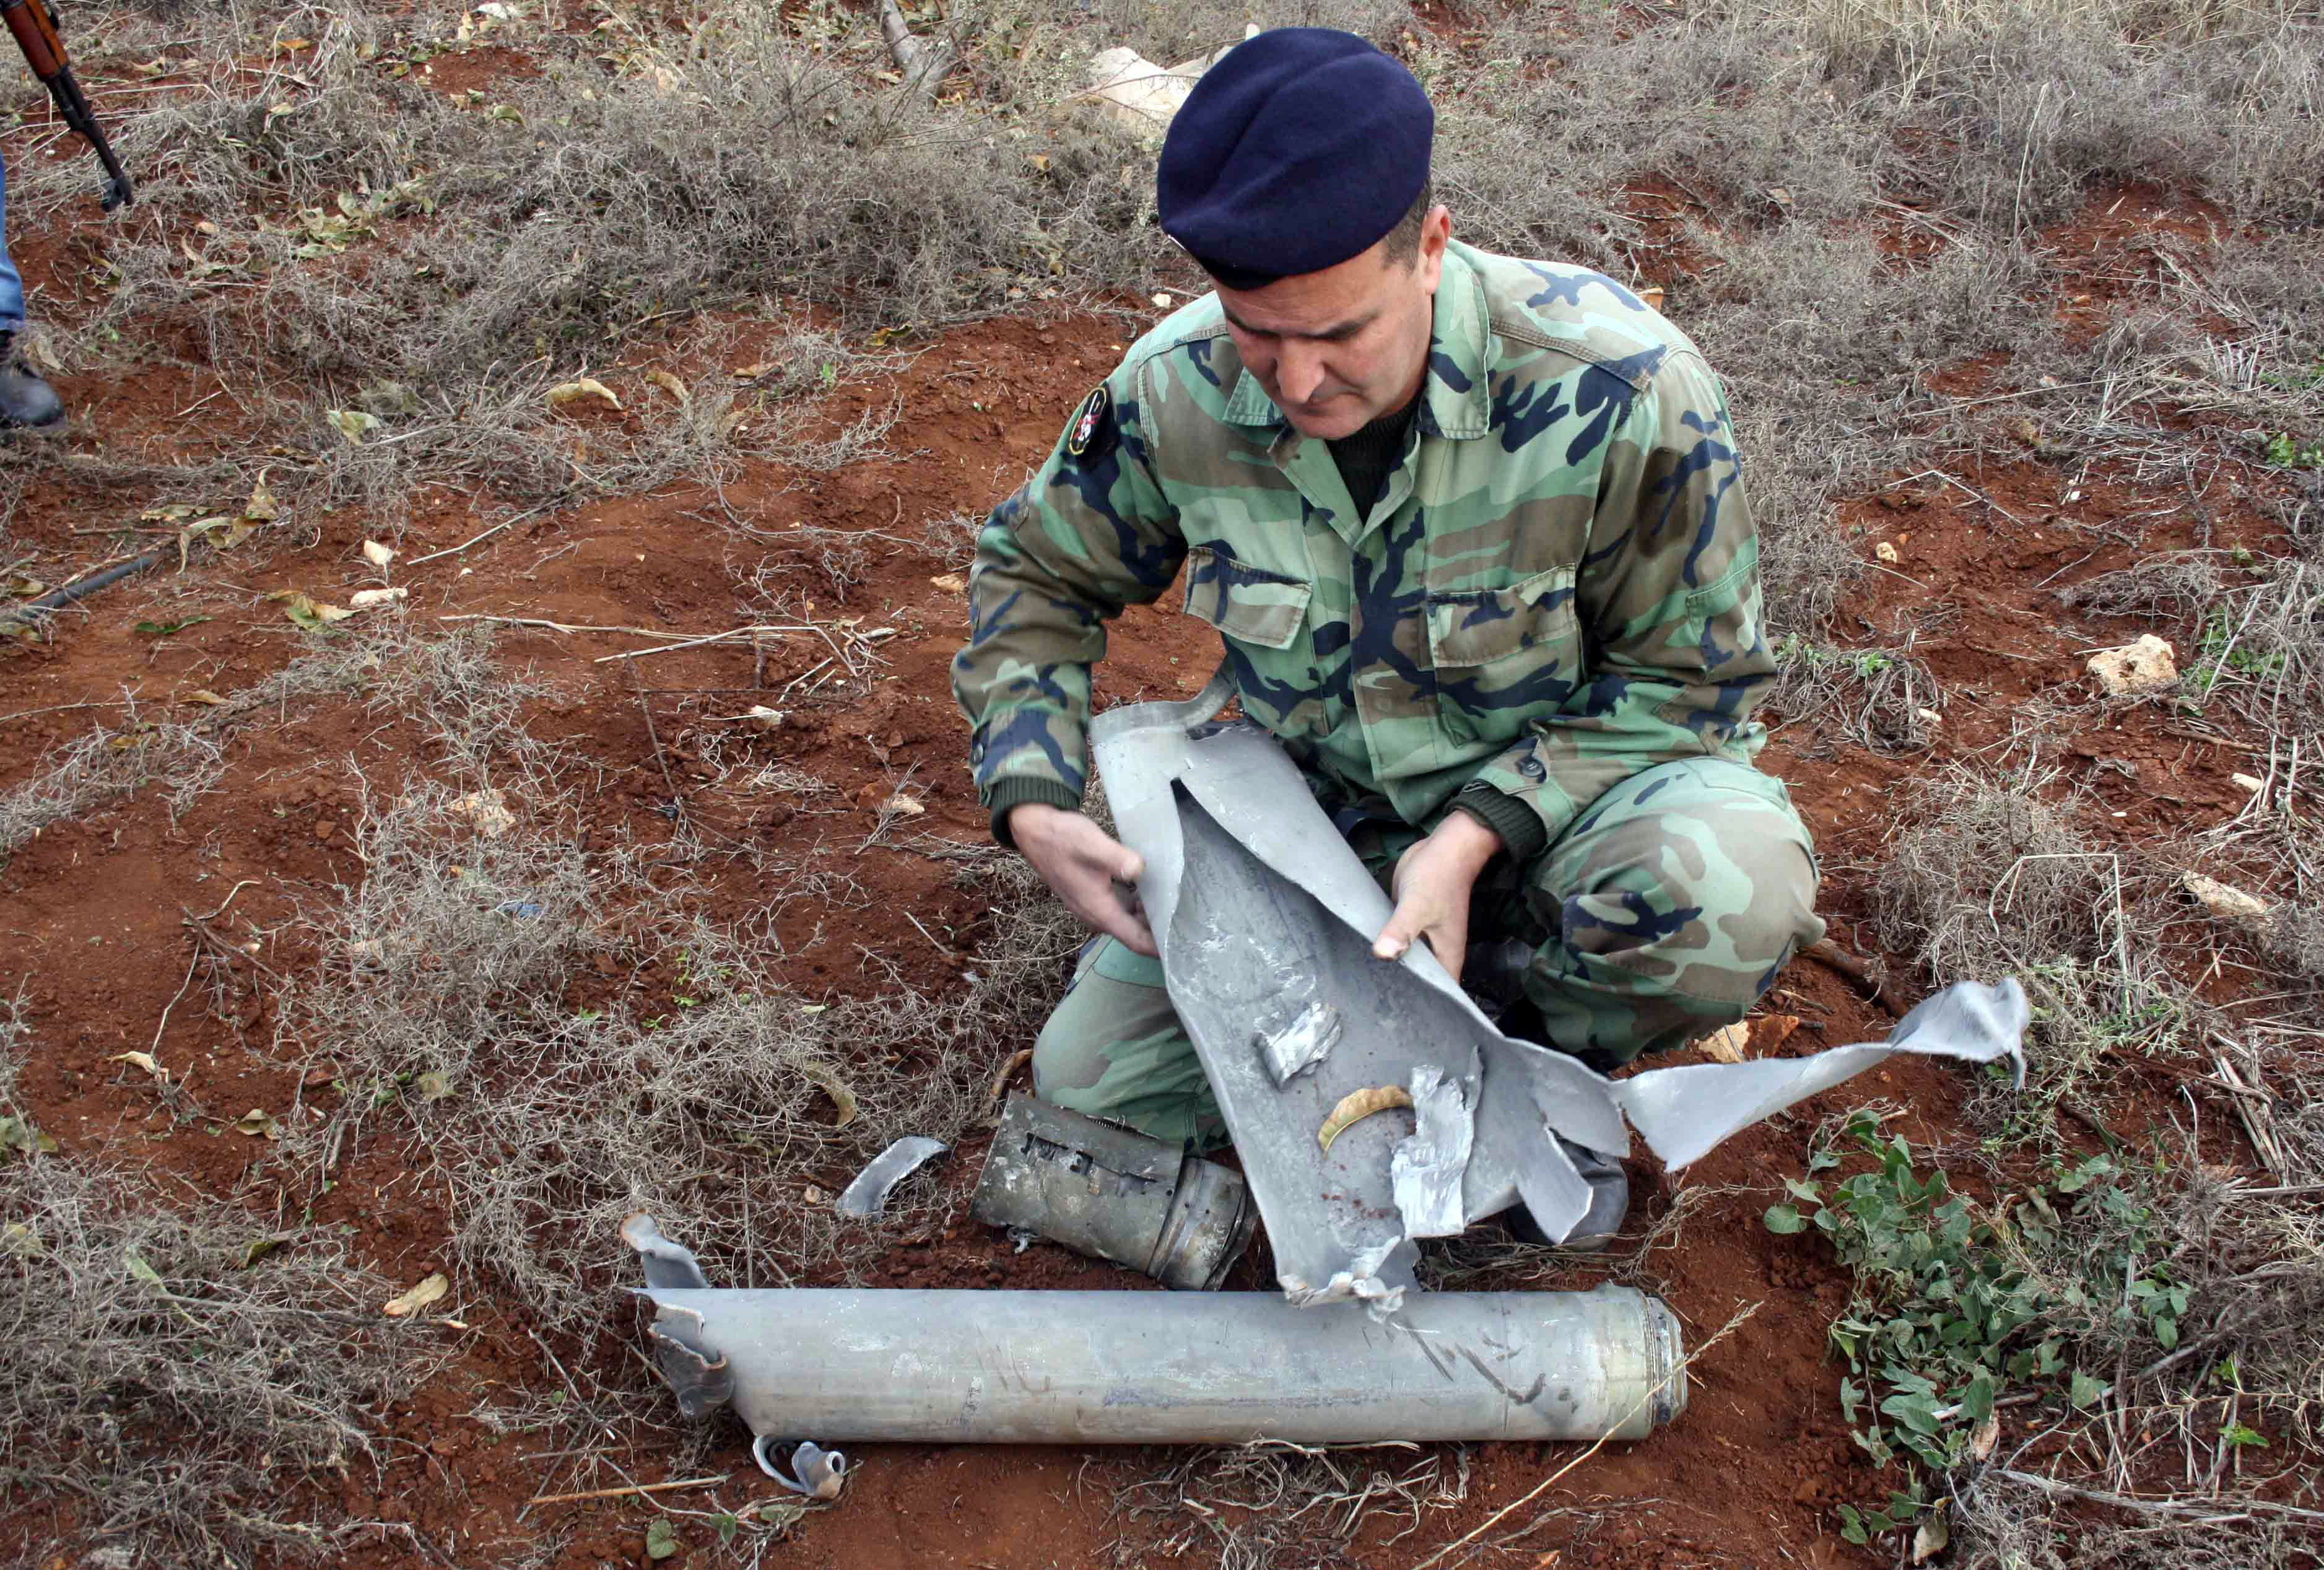 A Lebanese soldier examines of one 20 the shells that were fired by the Israeli army into southern Lebanon on December 29, 2013, without causing any damage. The barrage came after the Israeli military said it had responded to rockets that reportedly struck an open field west of the town of Kyriat Shmona without causing any casualties or damage.  (AFP PHOTO/ALI DIA)